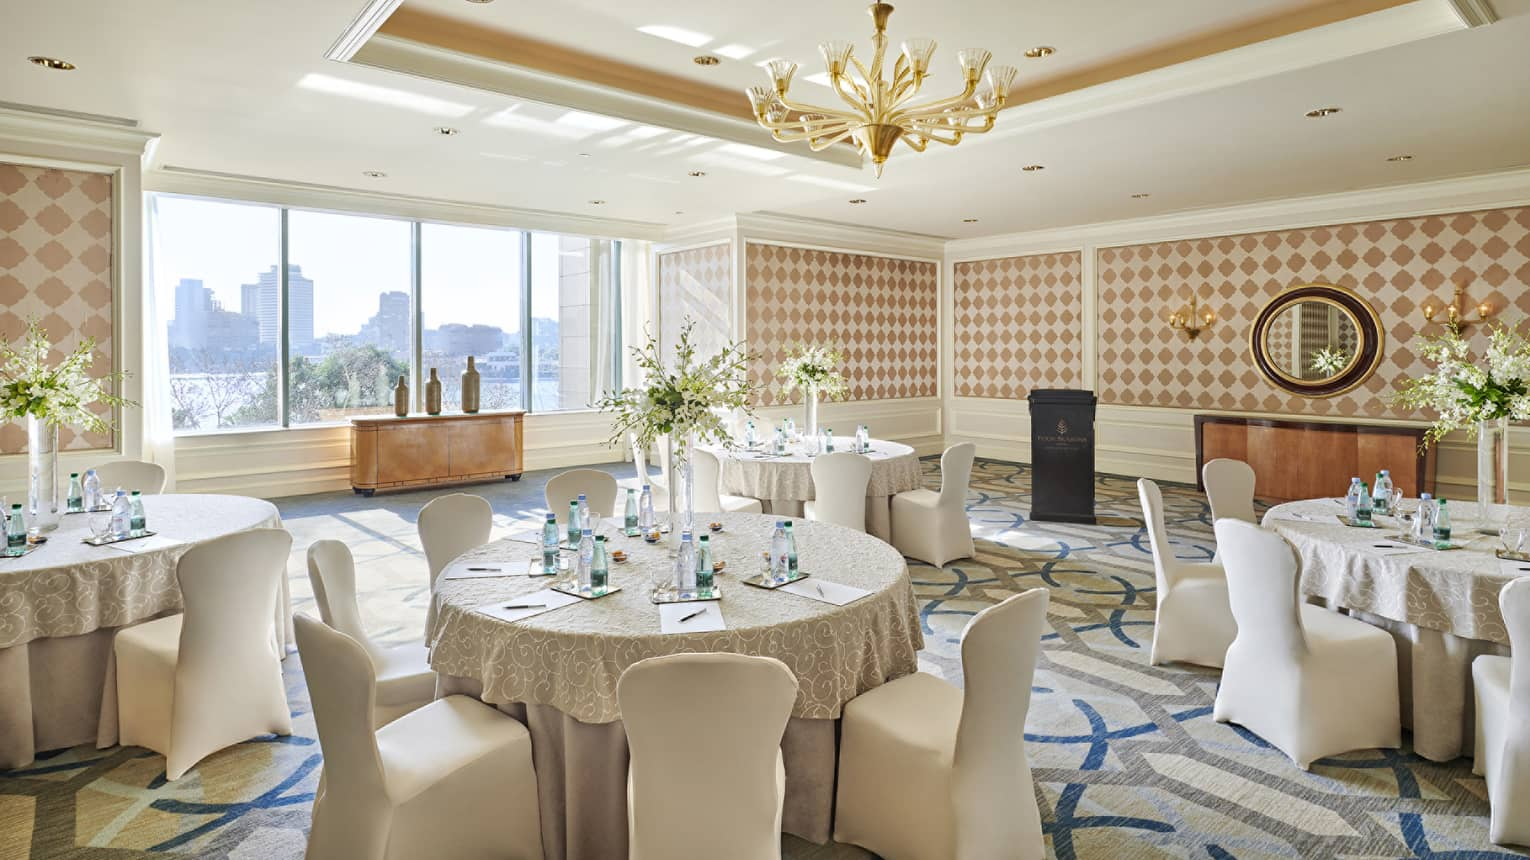 Round banquet tables, linen-covered chairs in sunny Kasr El Nile meeting room